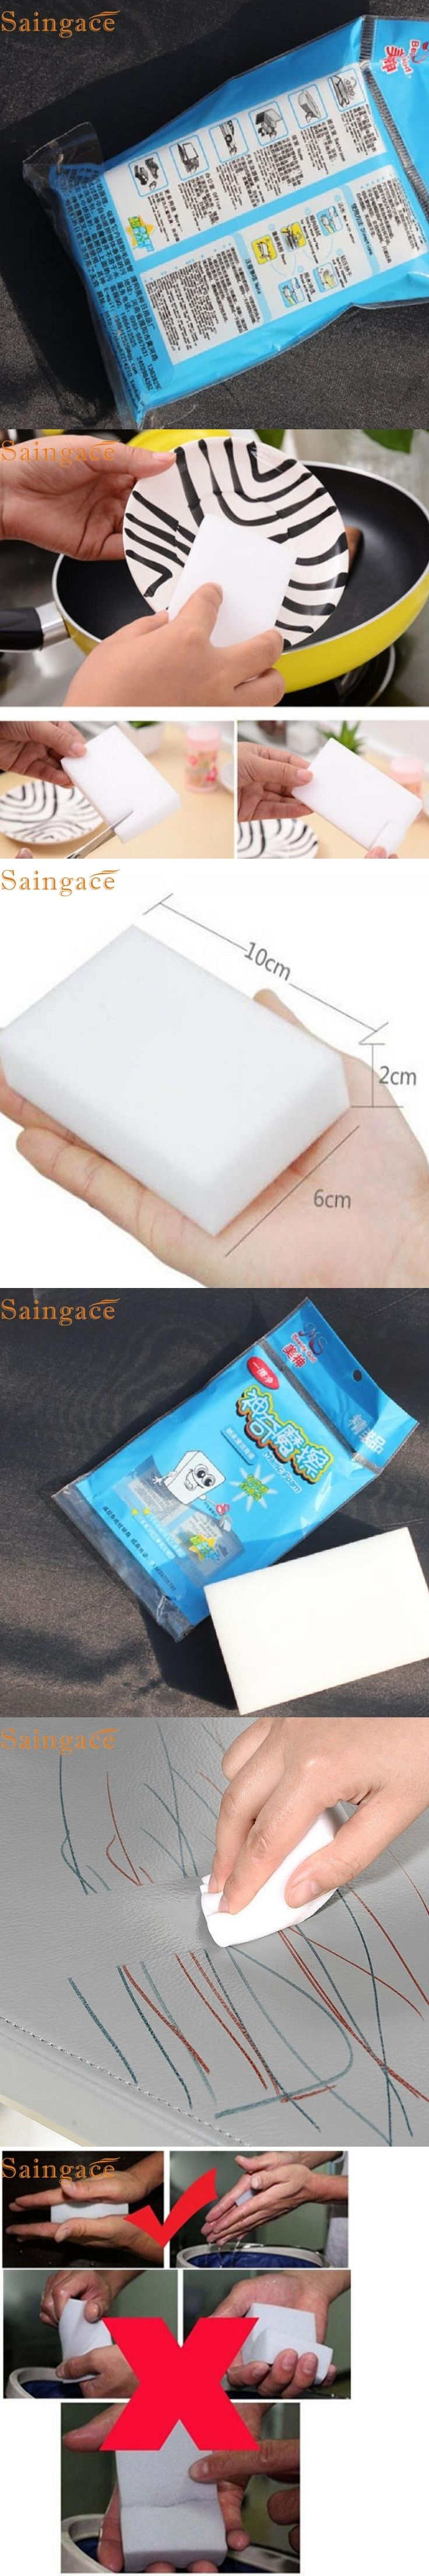 11.11 May 5 High Quality   10X Melamine Foam Magic Sponge Eraser Multi-functional Home Cleaning Cleaner Pad